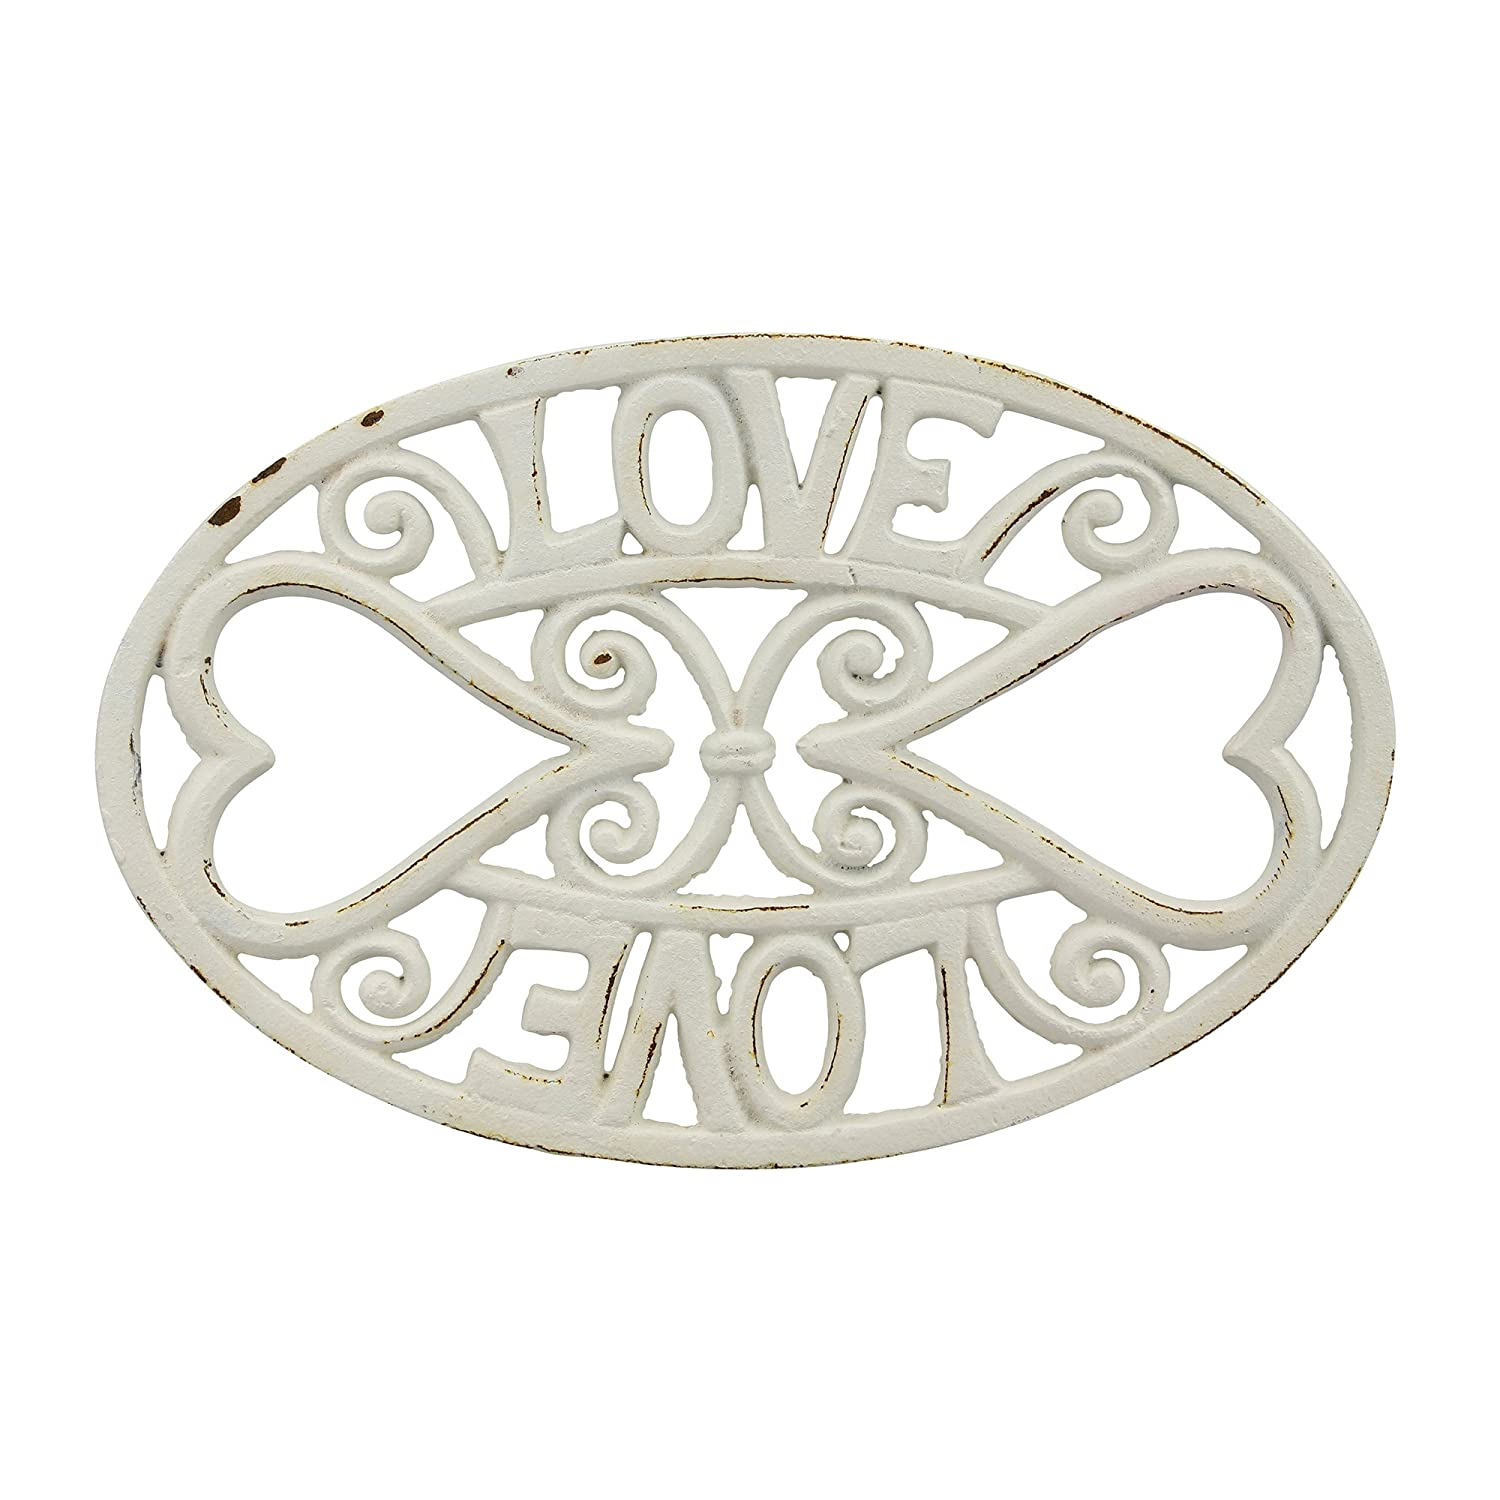 Stonebriar Oval Worn White Cast Iron Love Trivet with Heart Details and Heat Resistant Feet, Decorative Pot Holders, Heavy Duty Hot Plate for Teapots, Dutch Ovens, and Hot Dishes CKK Home Décor SB-6049A